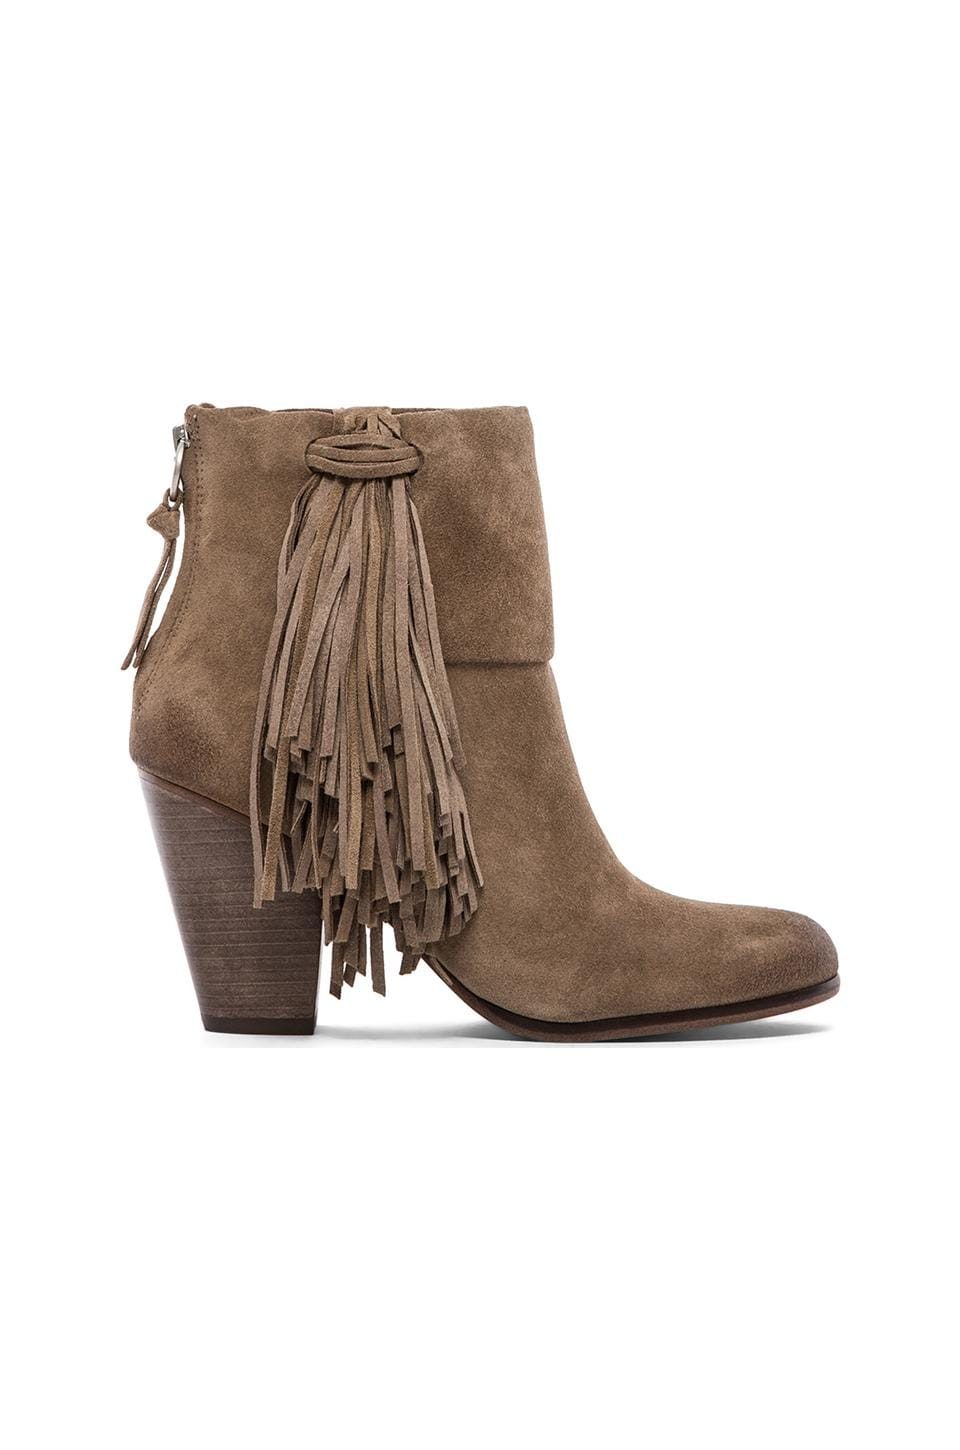 Ash Quito Bootie in Taupe